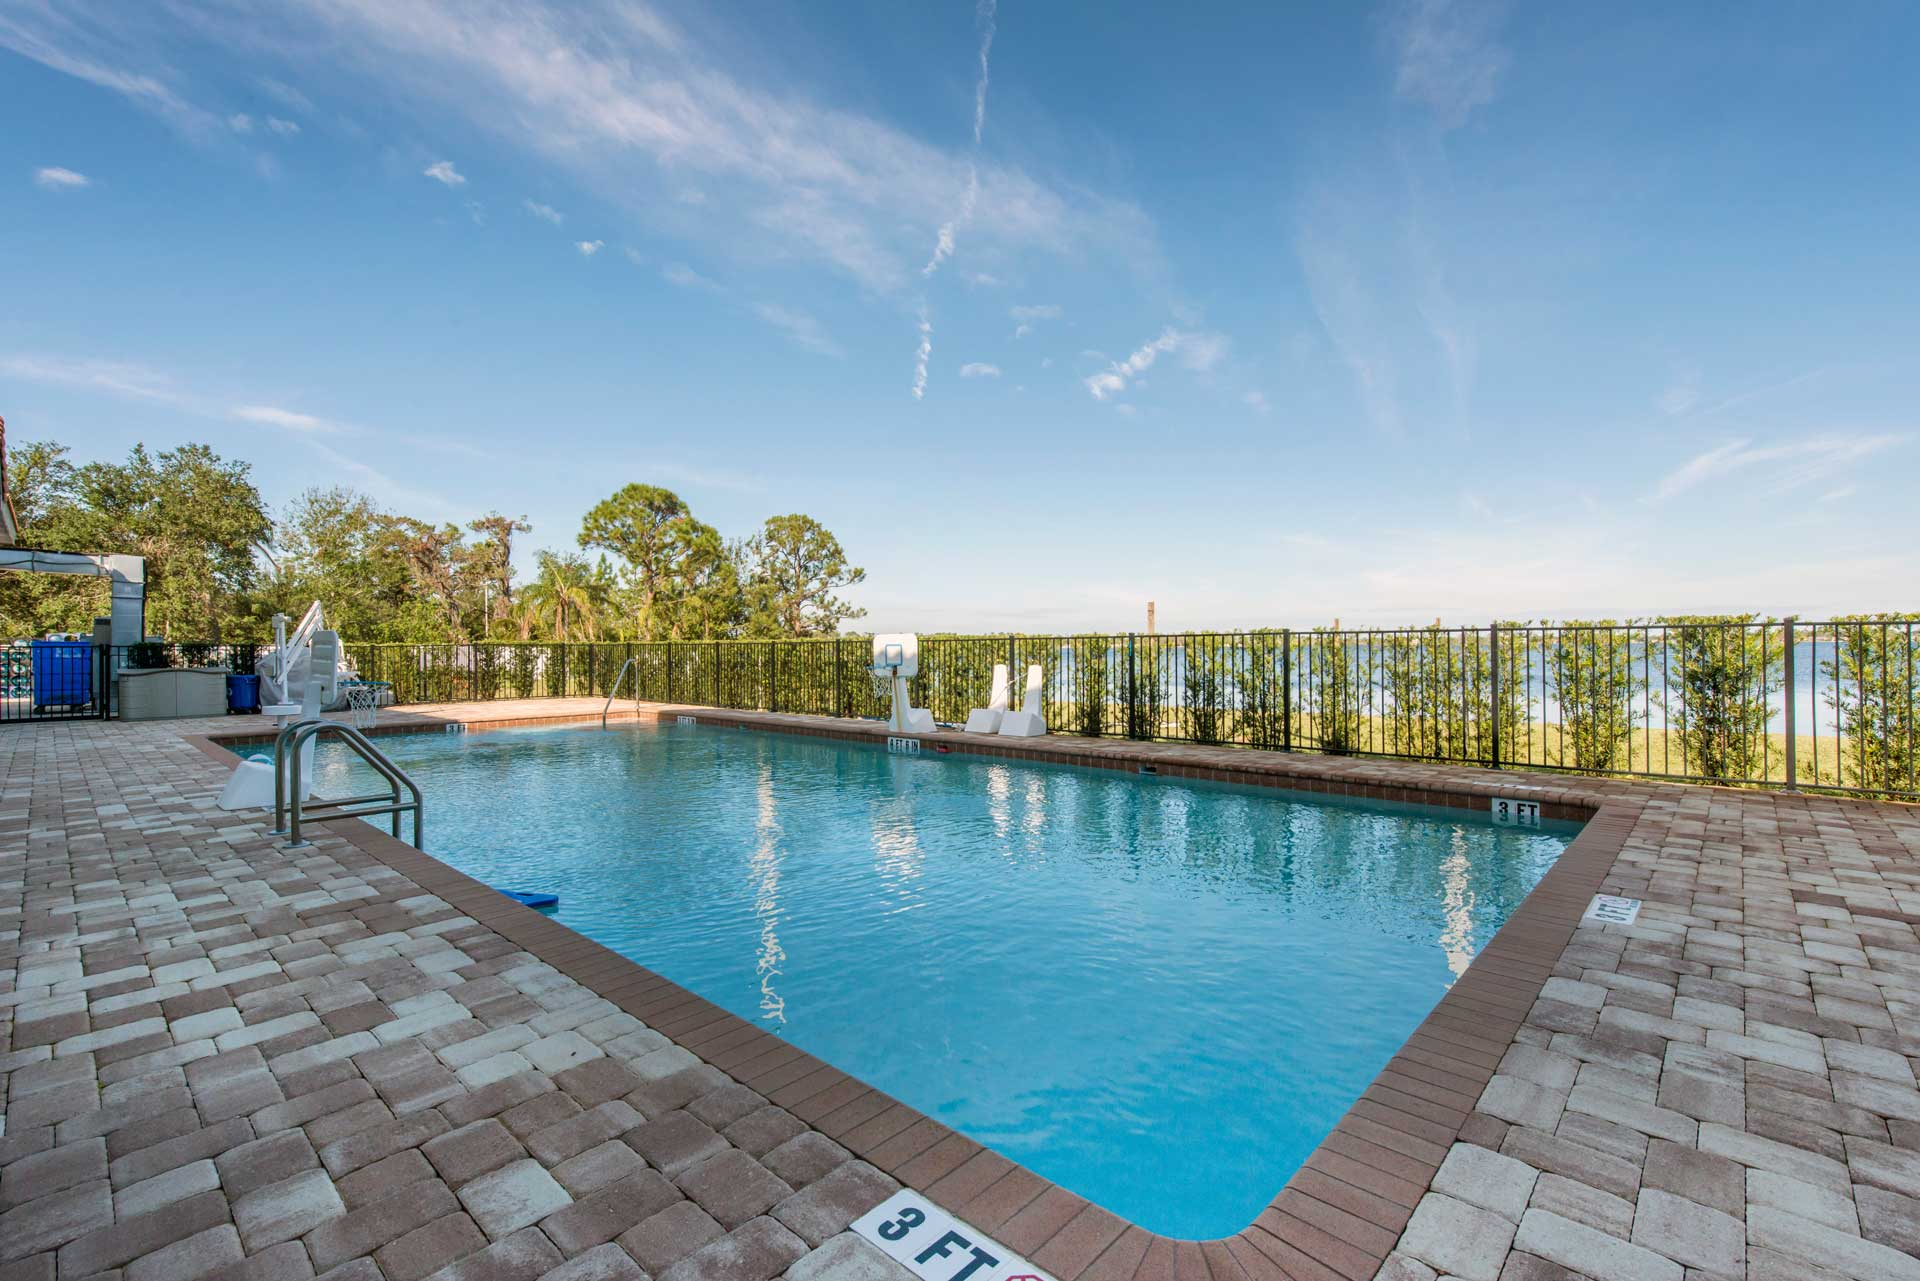 Outdoor swimming area at our teen drug and alcohol rehab facility in Sebring, FL.